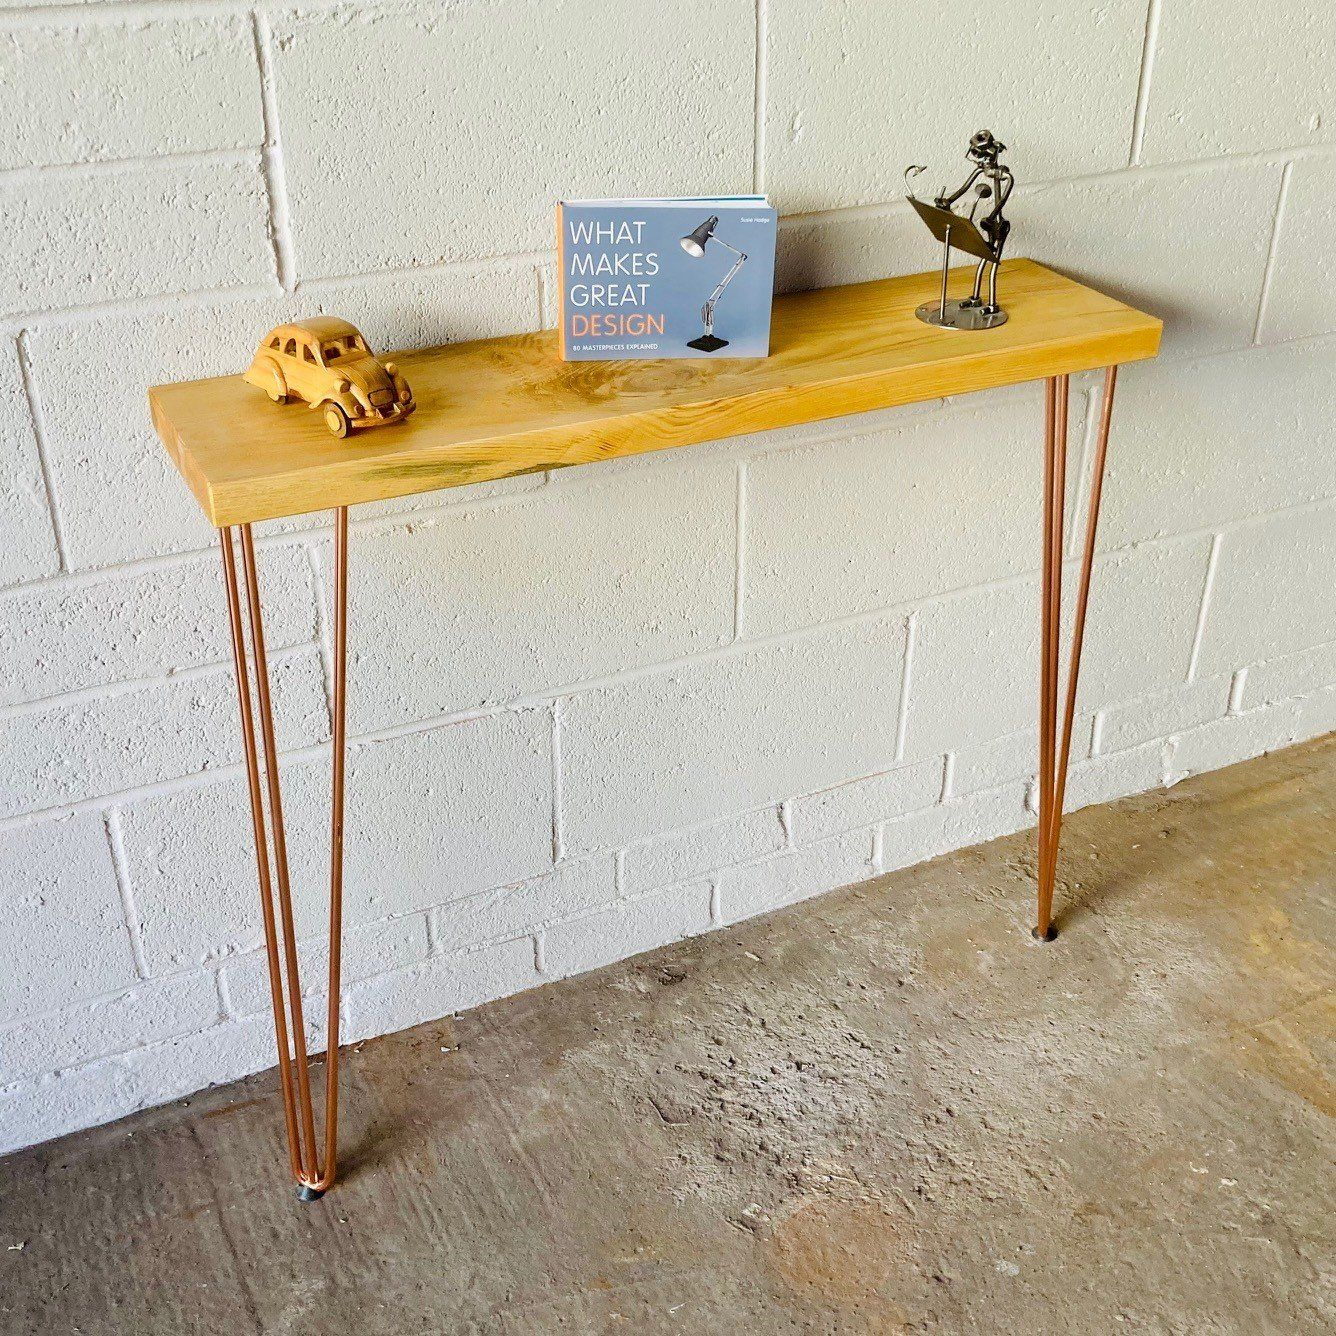 Console Table/Radiator Table 120cm x 22cm Industrial Urban Contemporary With Metal Hairpin Legs - White / Light Oak / 120cm